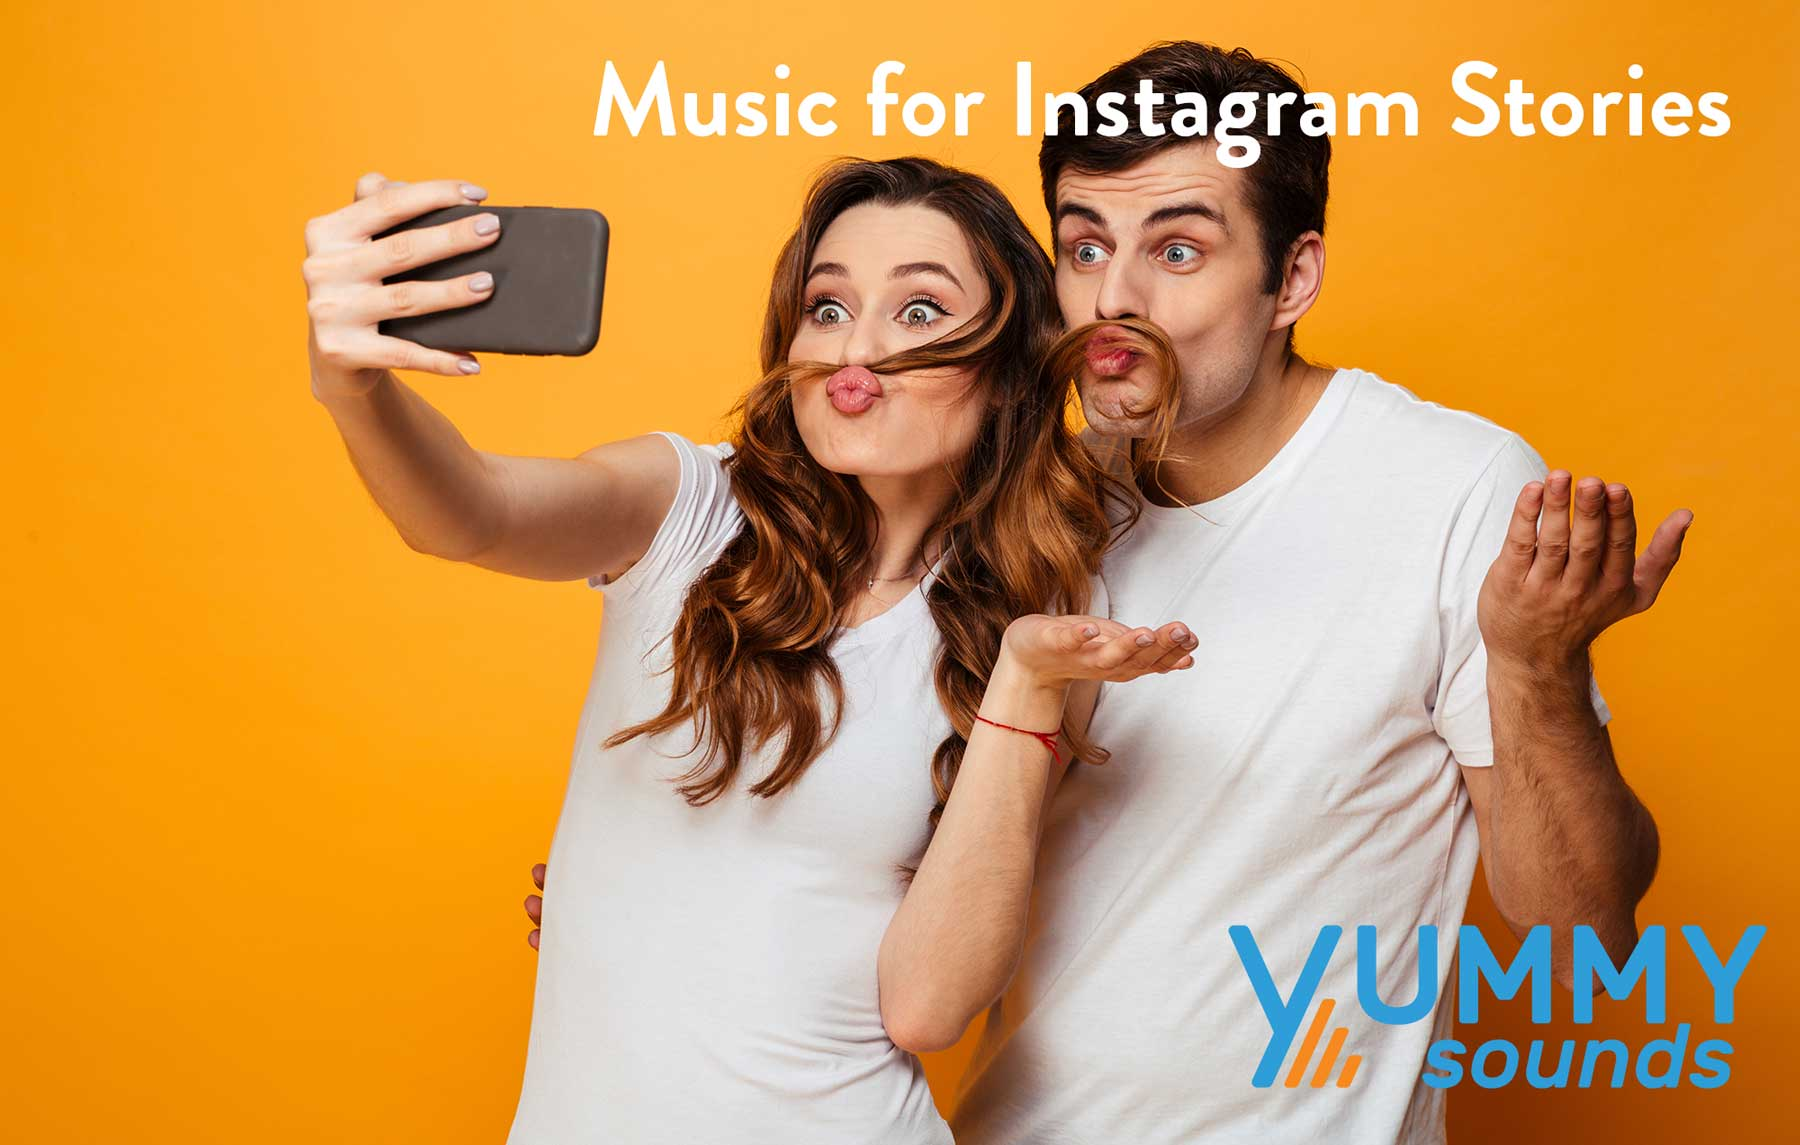 Music for Instagram Stories norm